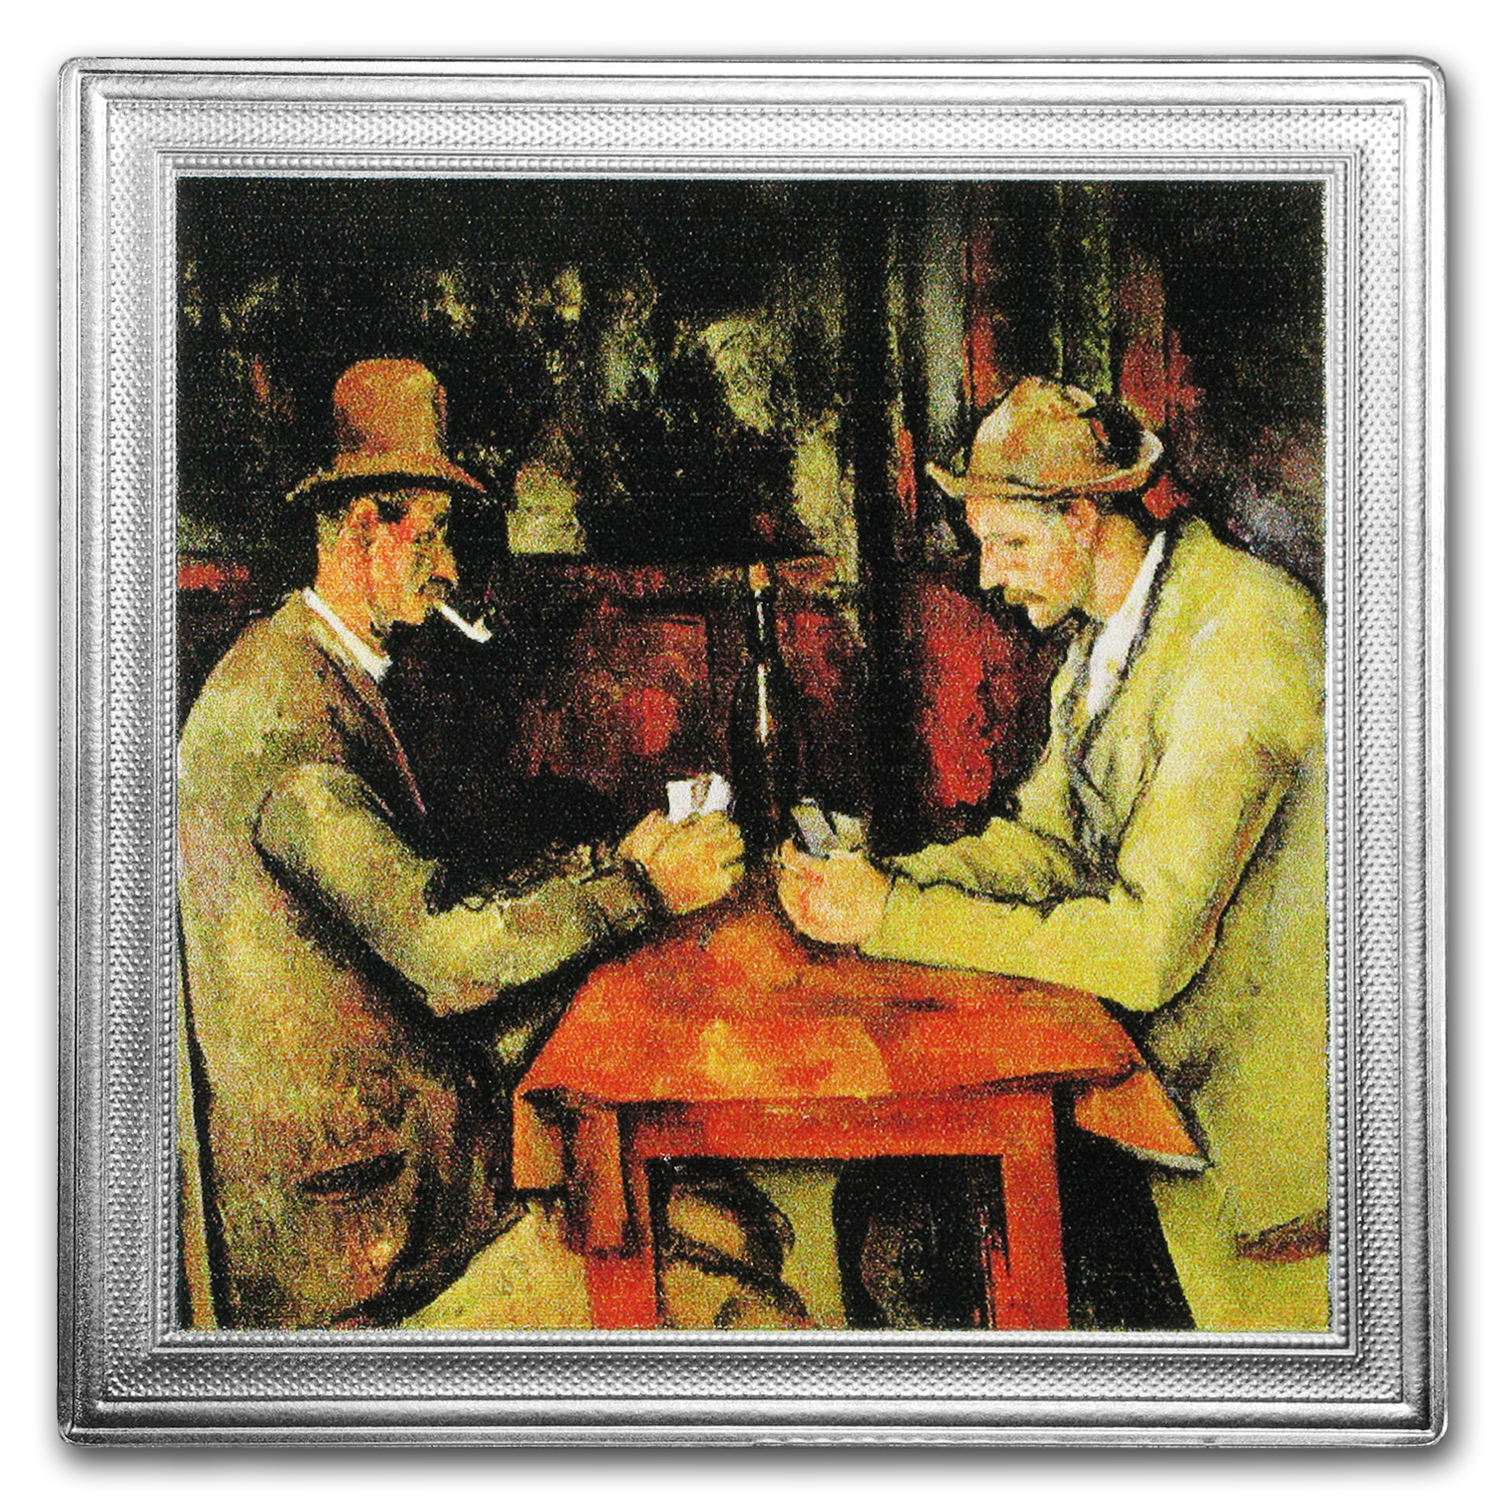 2016 Niue 2 oz Silver Paul Cézanne Painting (The Card Players)